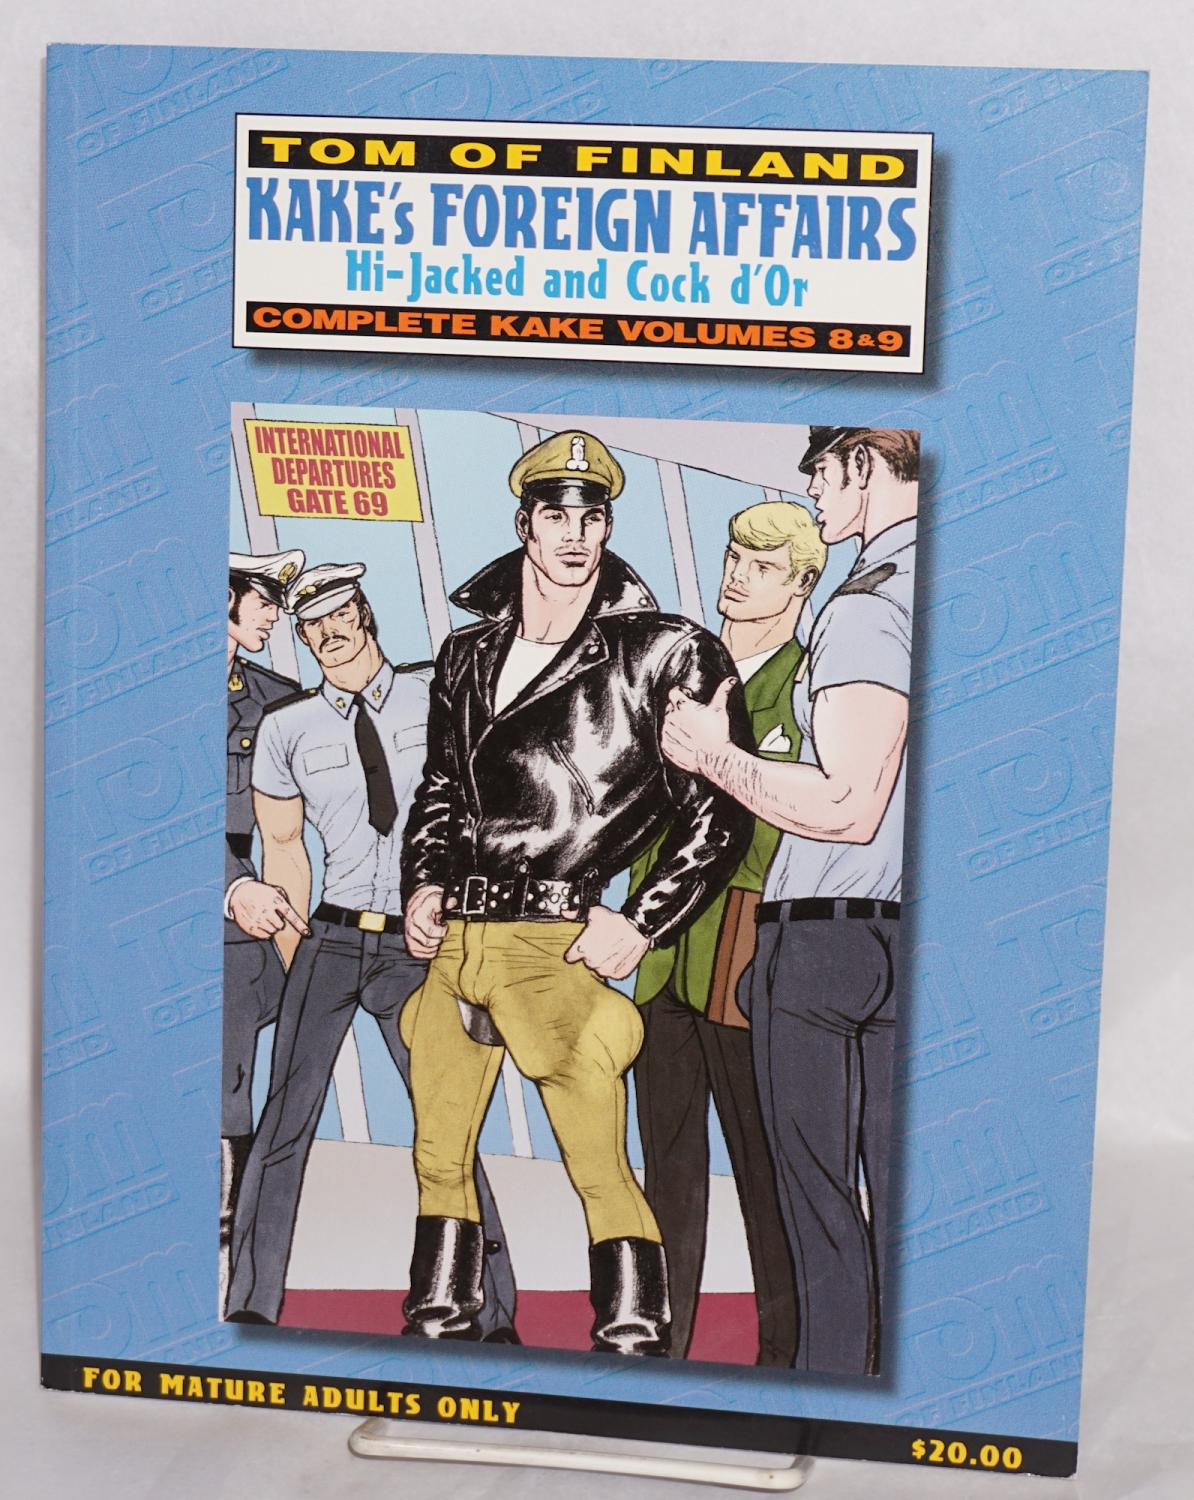 Kake's Foreign Affairs: Hi-jacked and Cock d'Or; complete Kake volumes 8 & 9